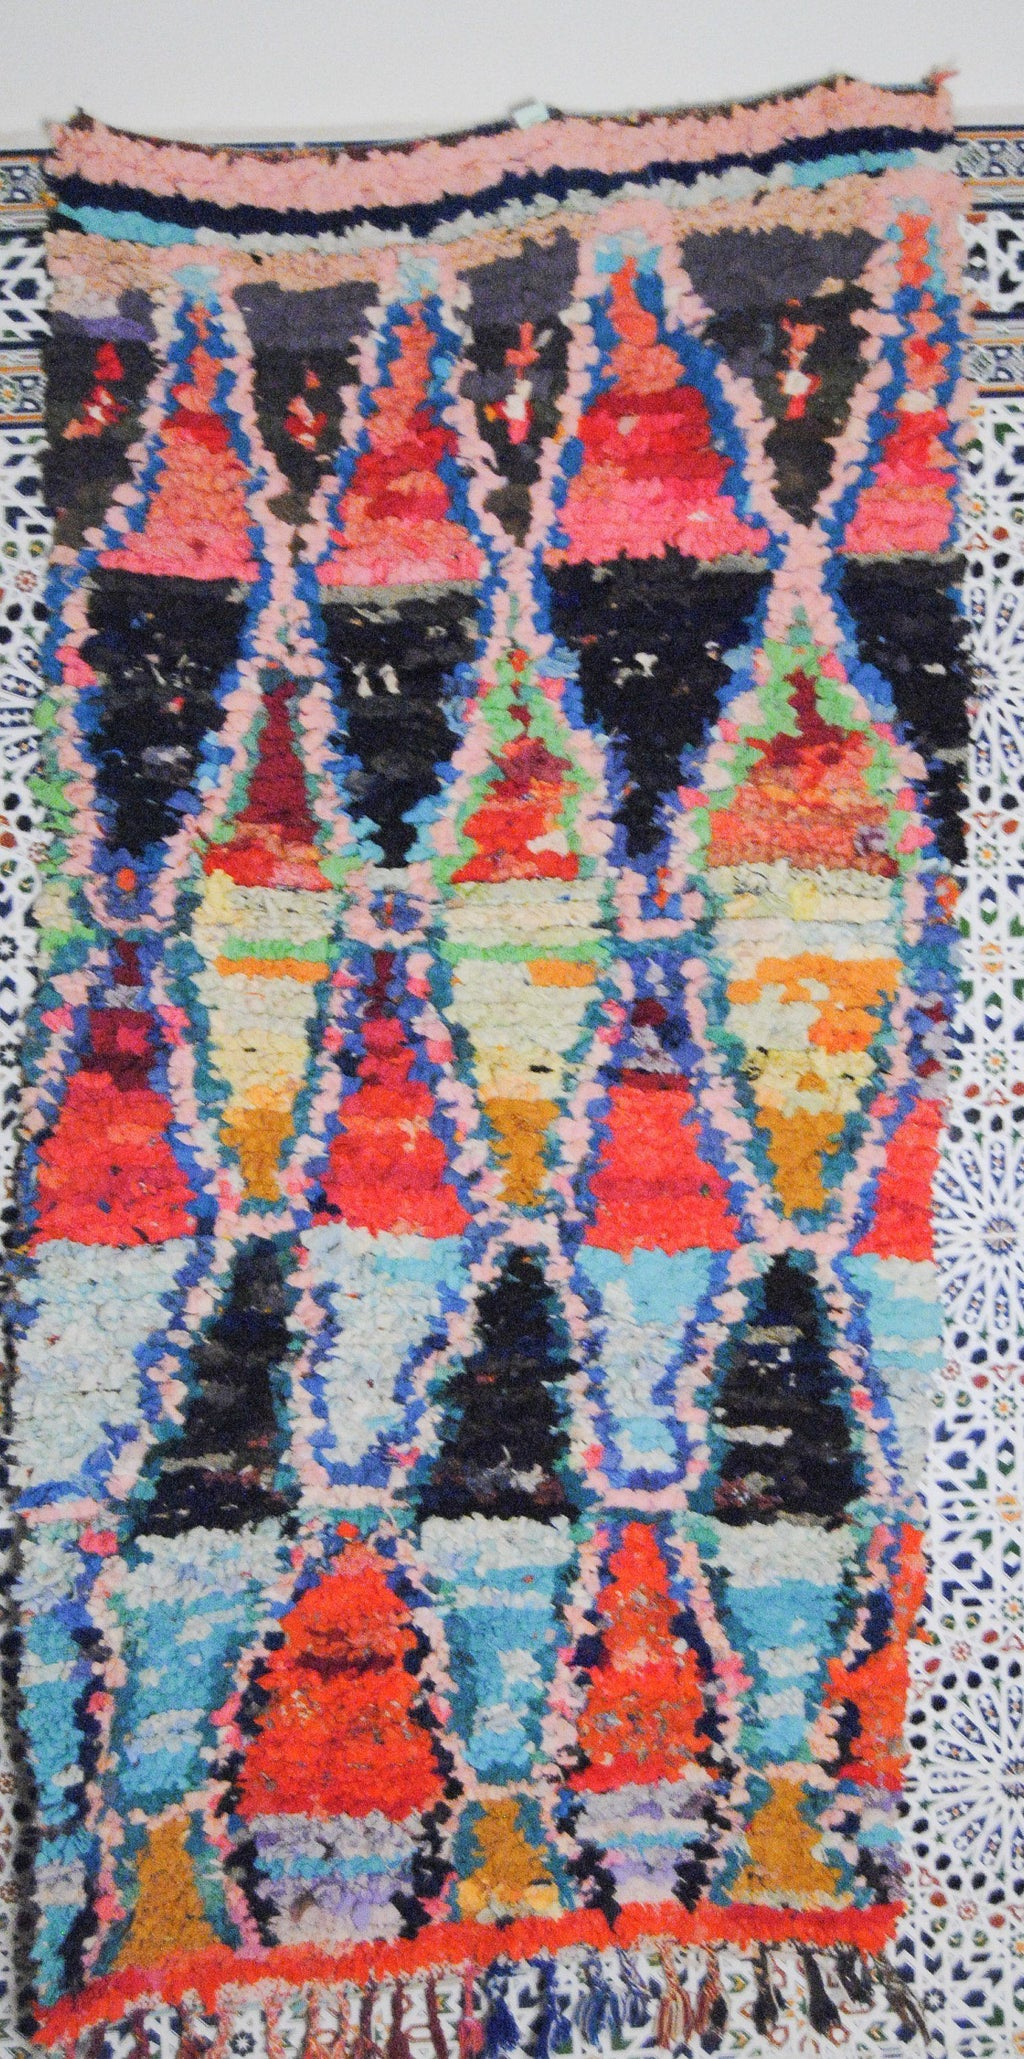 Alernas boucherouite rug tapis berbere psychedelic tapestry moroccan rugs - HammoudRugs